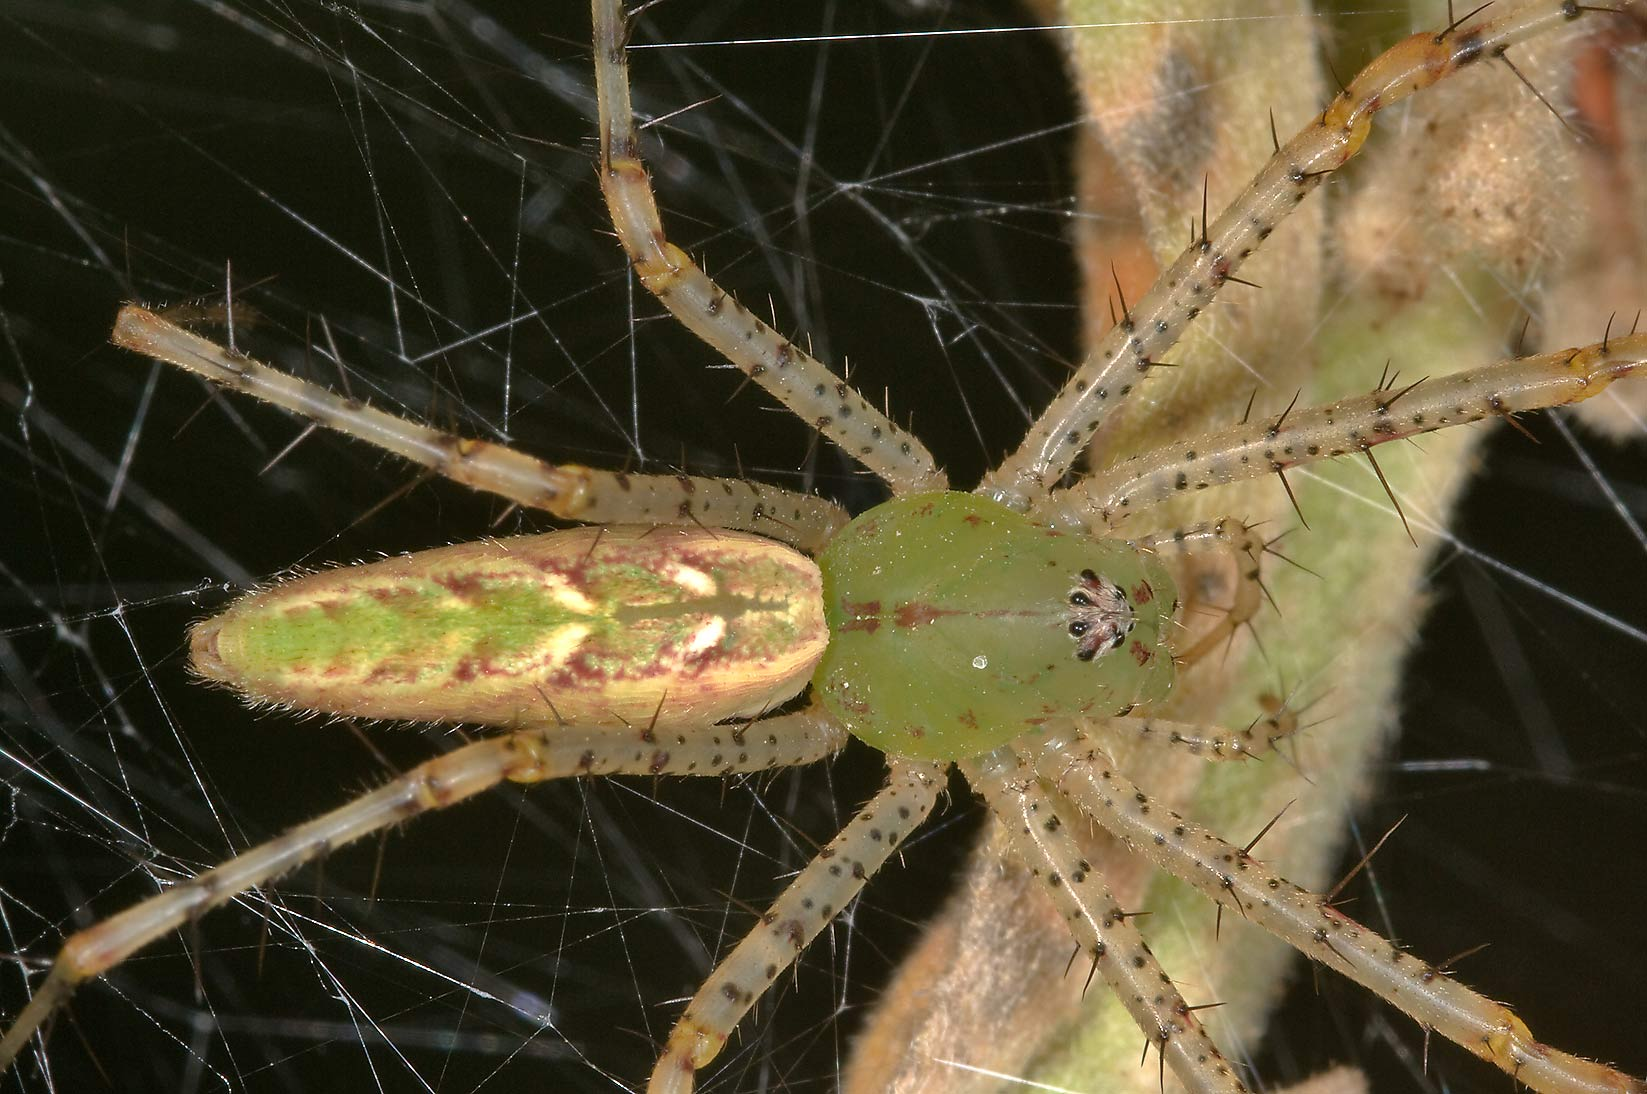 Green lynx spider near his nest in Lick Creek Park. College Station, Texas